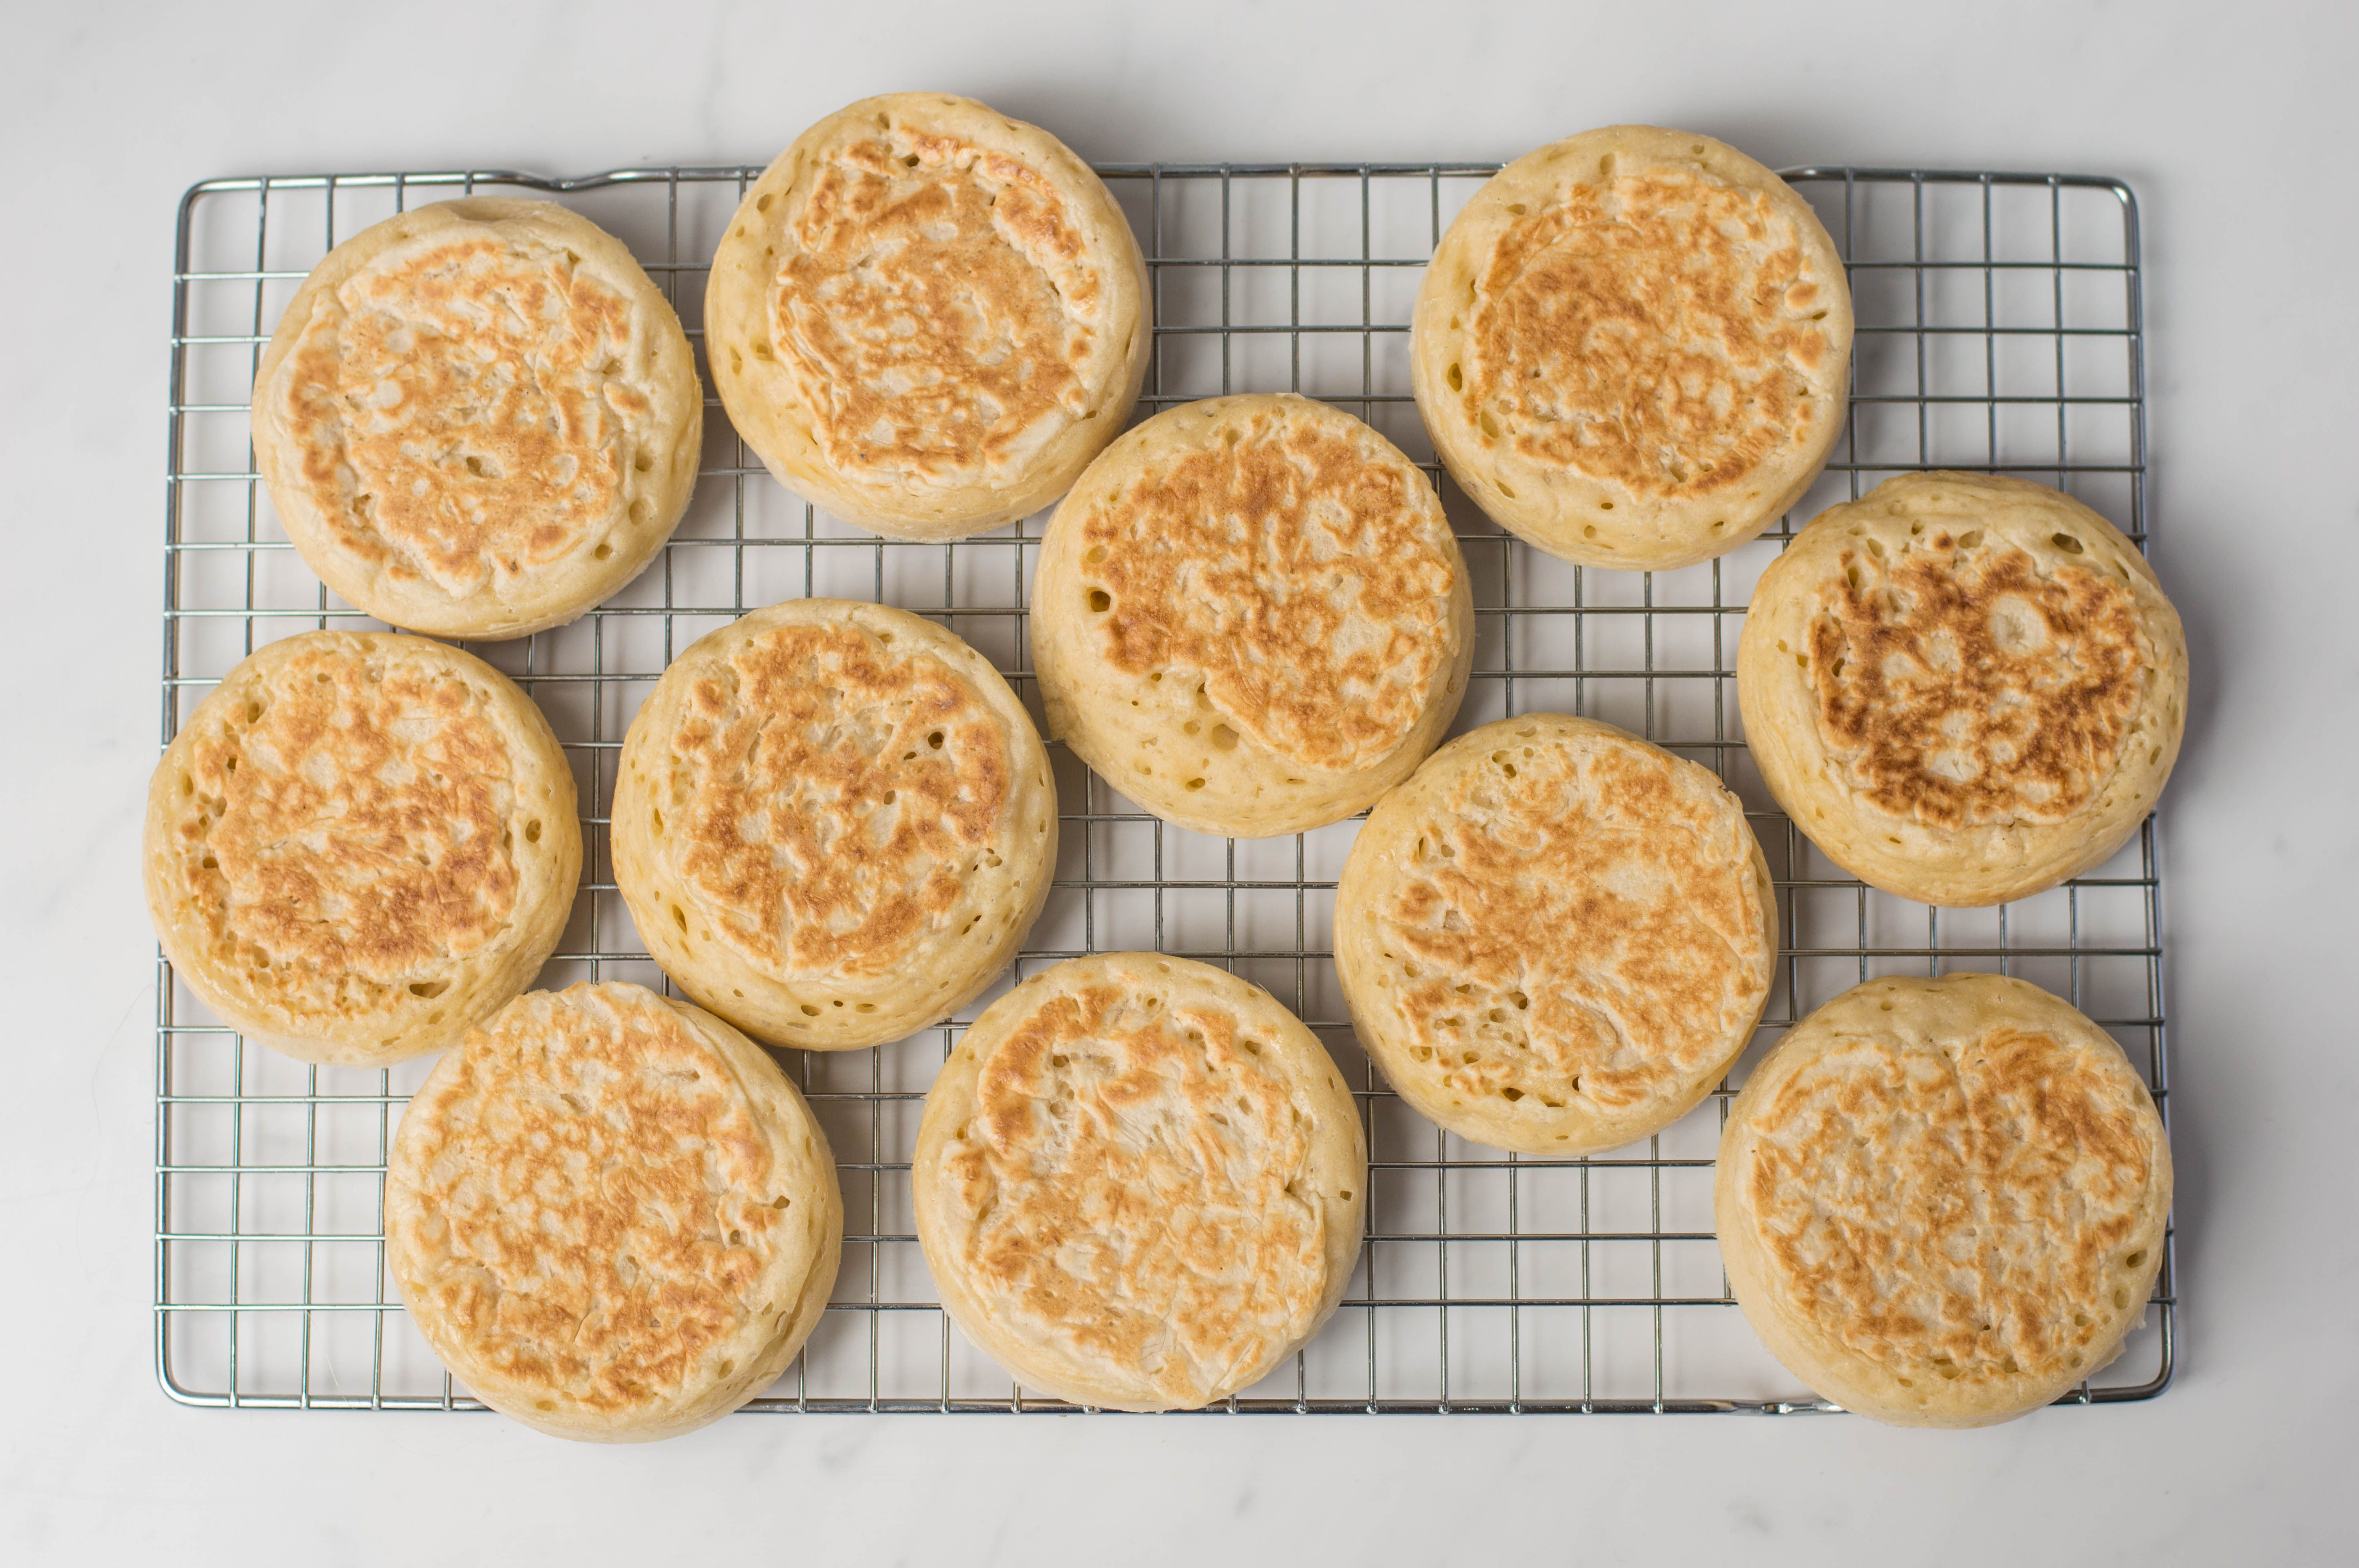 Crumpets cooking on a wire rack